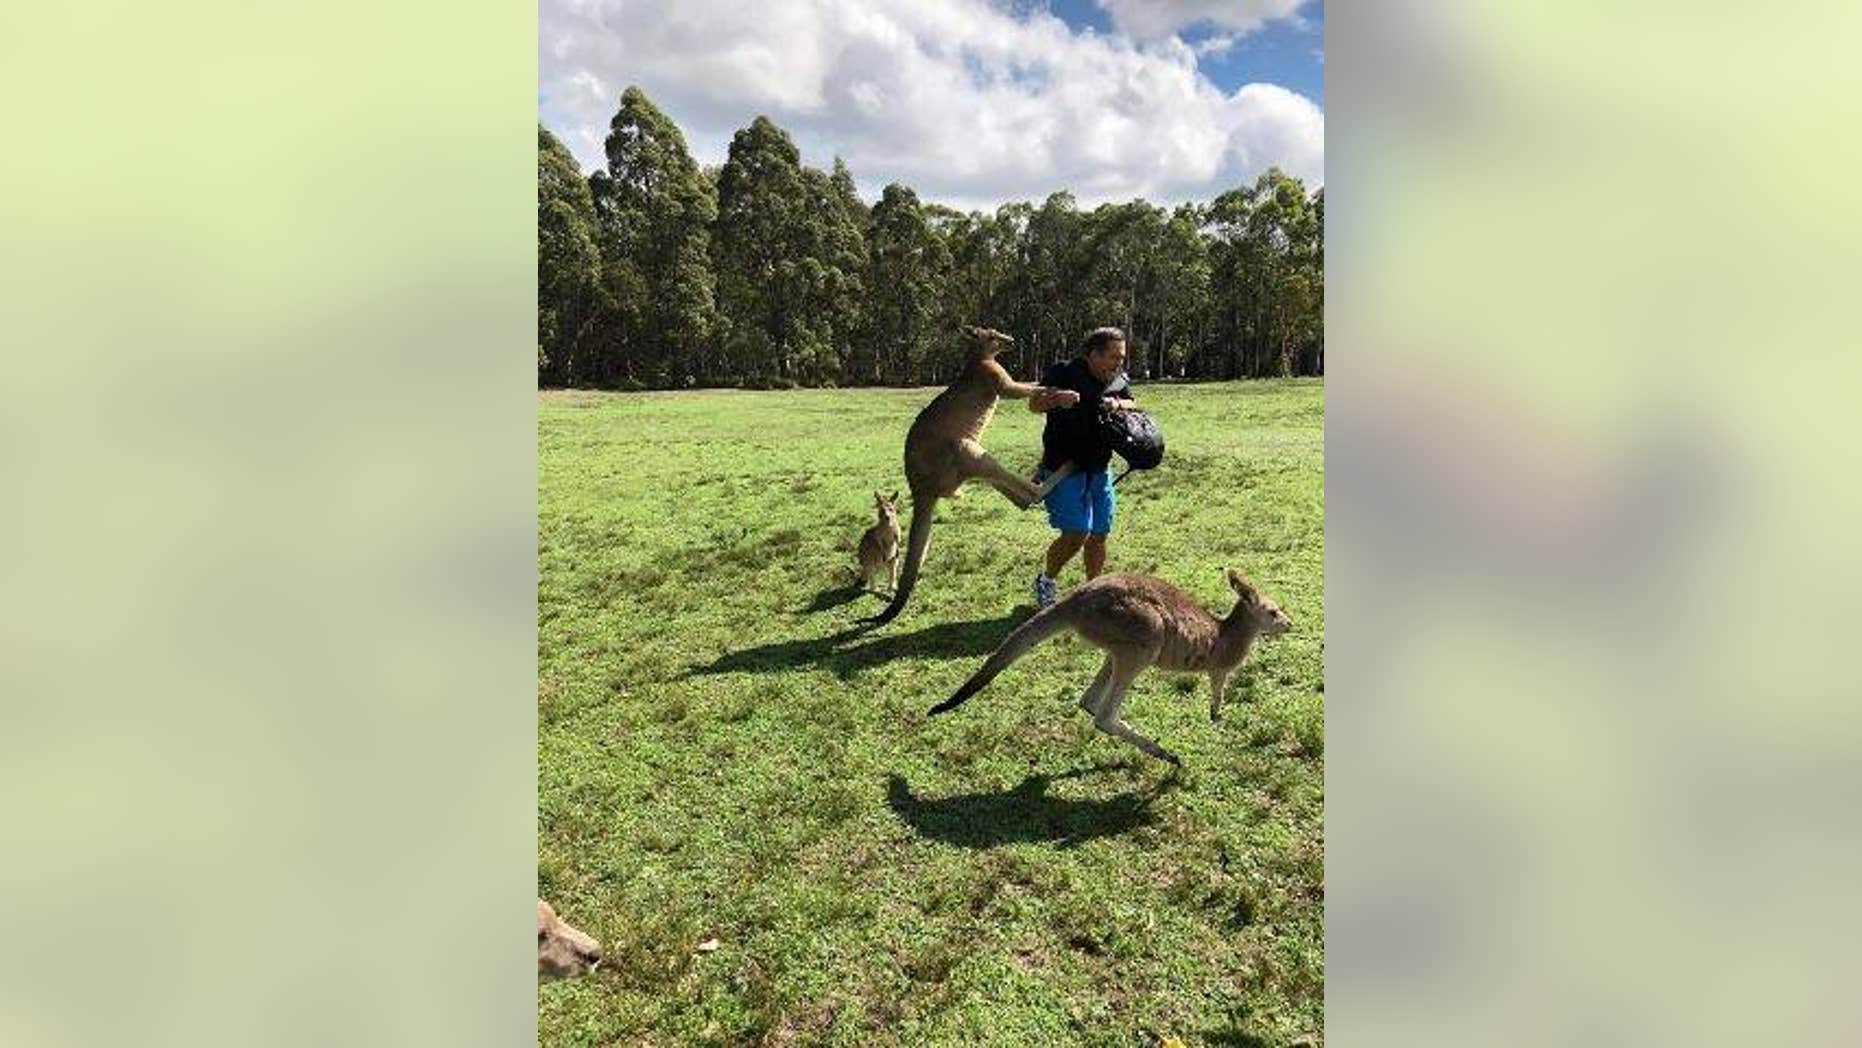 Tourists are being warned against feeding kangaroos after an uptick in attacks have been reported.